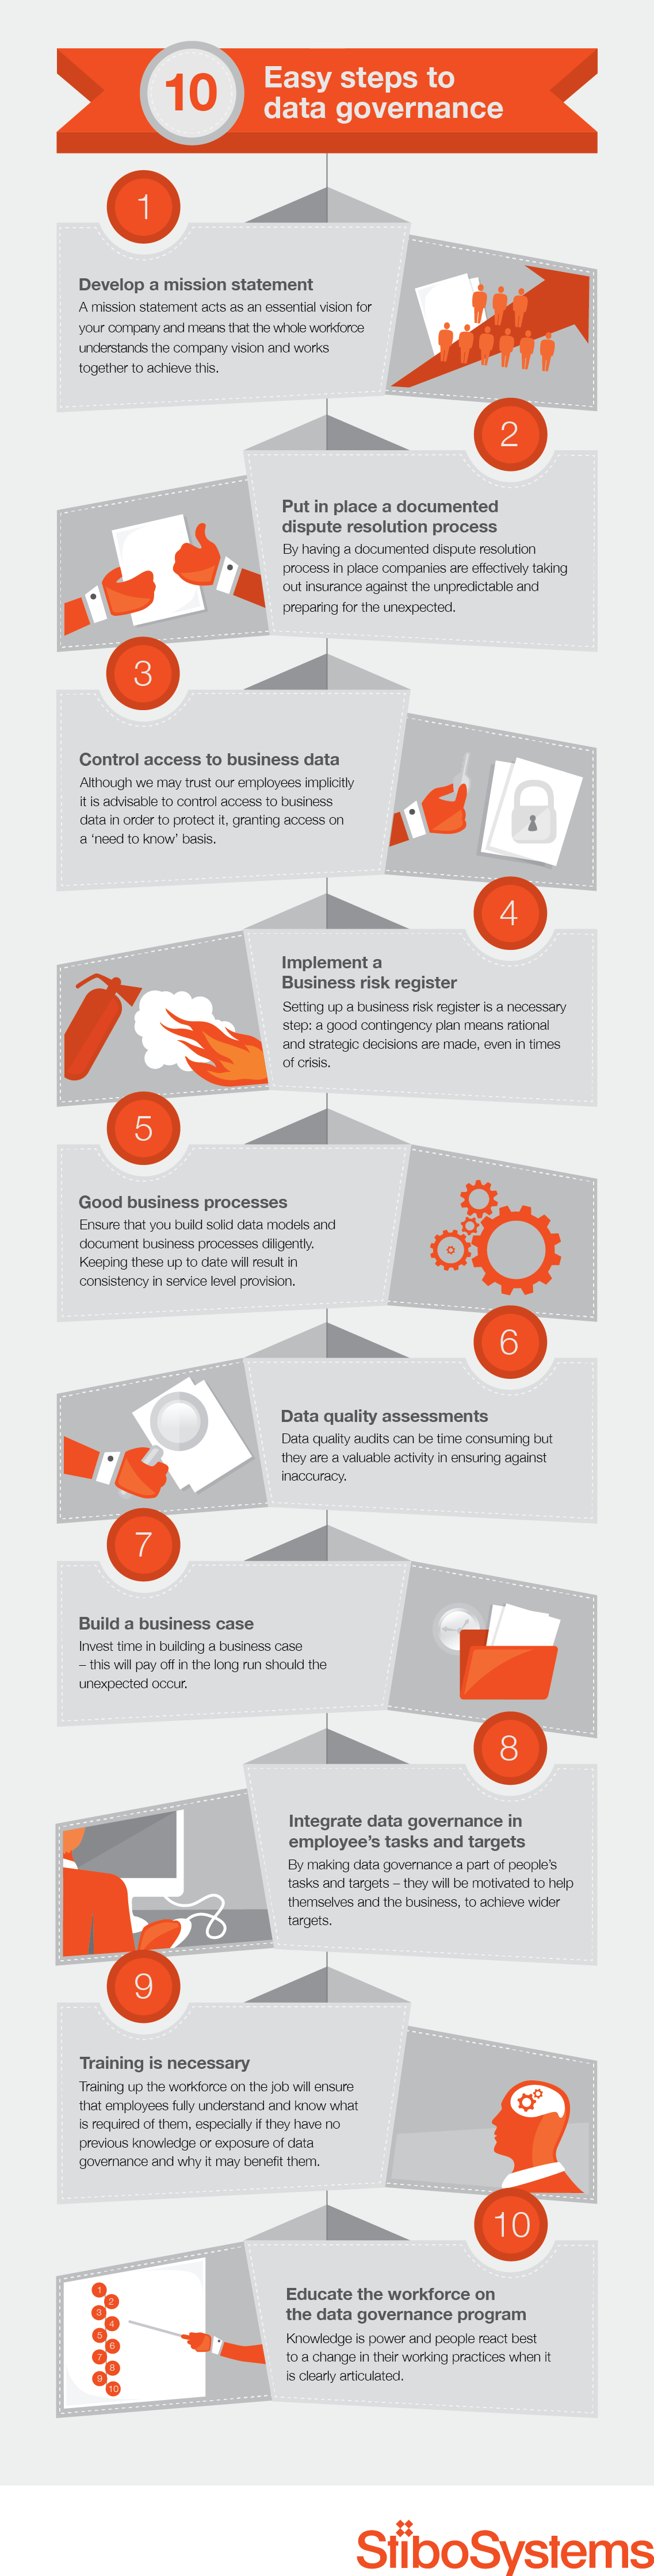 10 Easy Steps to Data Governance [INFOGRAPHIC]